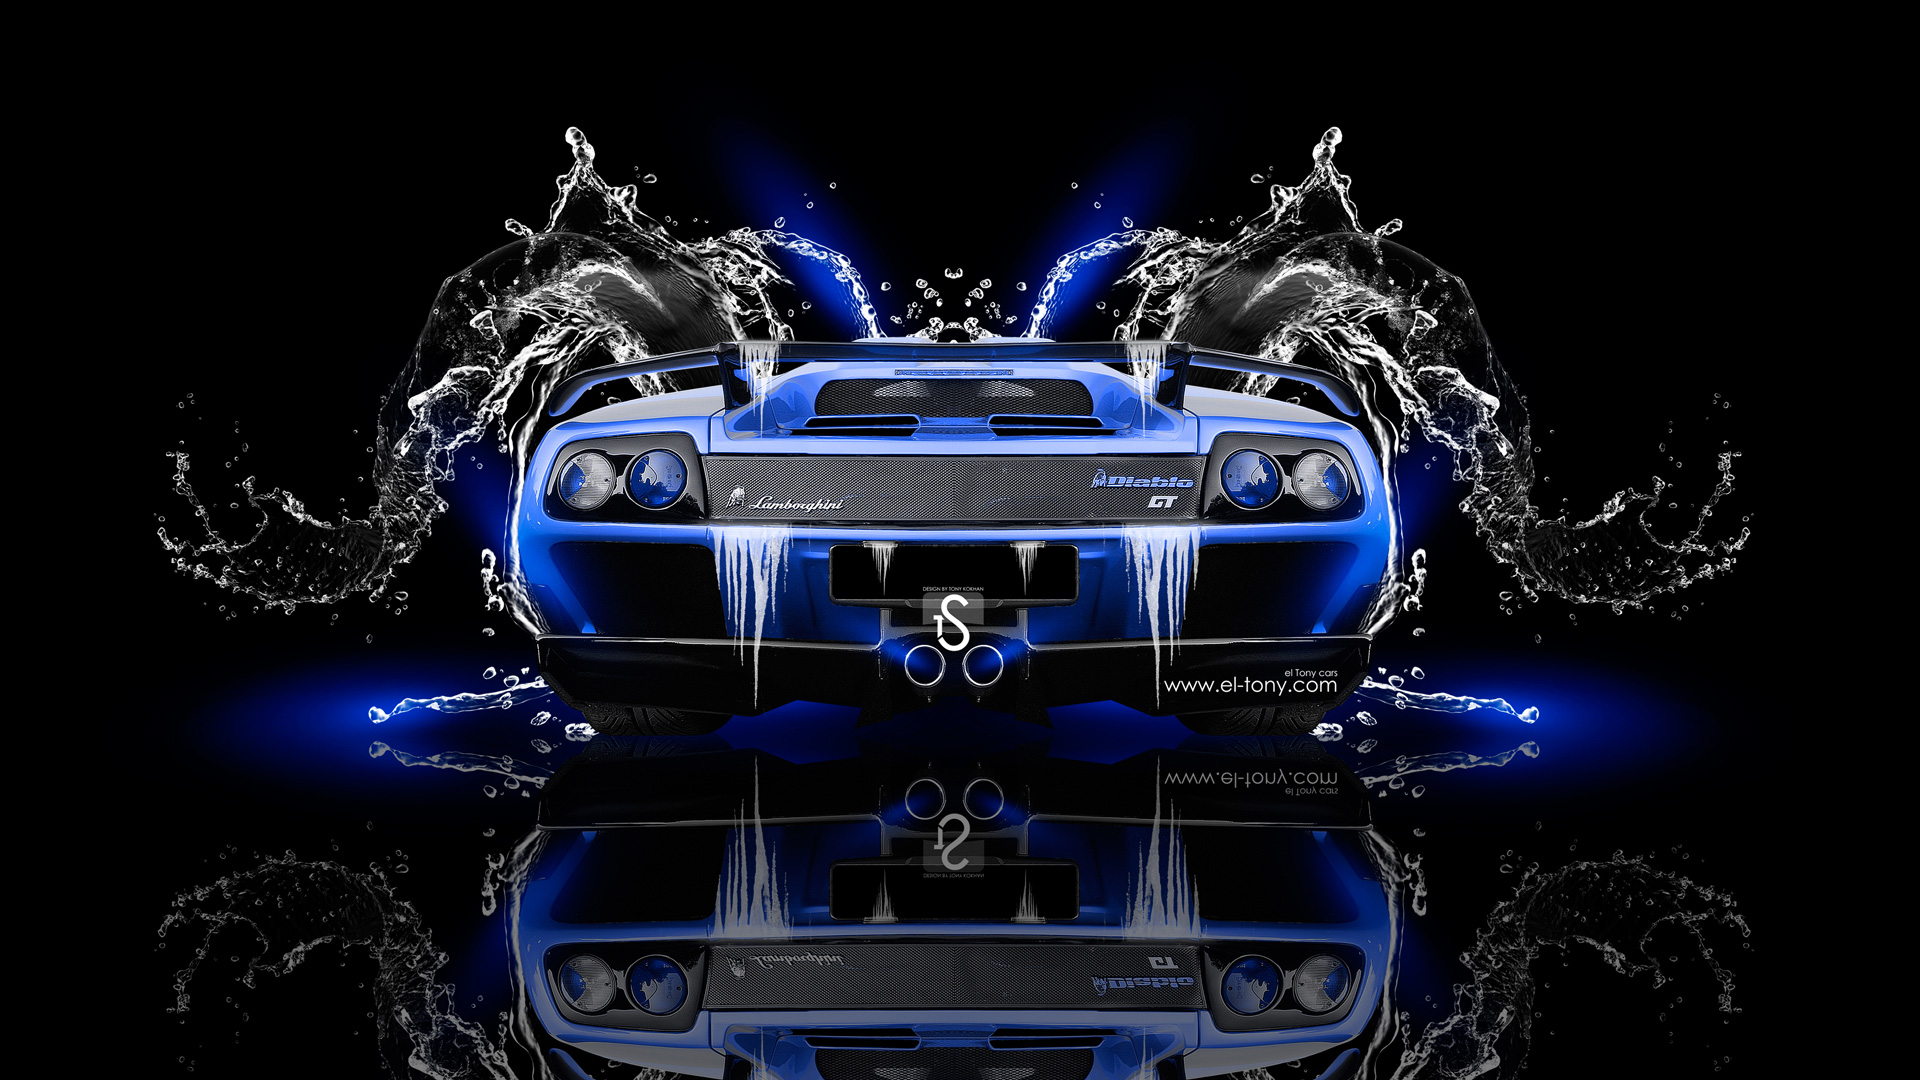 Lamborghini Diablo Back Super Water Car 2014 | el Tony on purple nissan gt-r 2014, purple dodge durango 2014, purple volkswagen beetle 2014, purple corvette 2014, purple bugatti veyron 2014, purple dodge challenger 2014, purple lotus elise 2014,